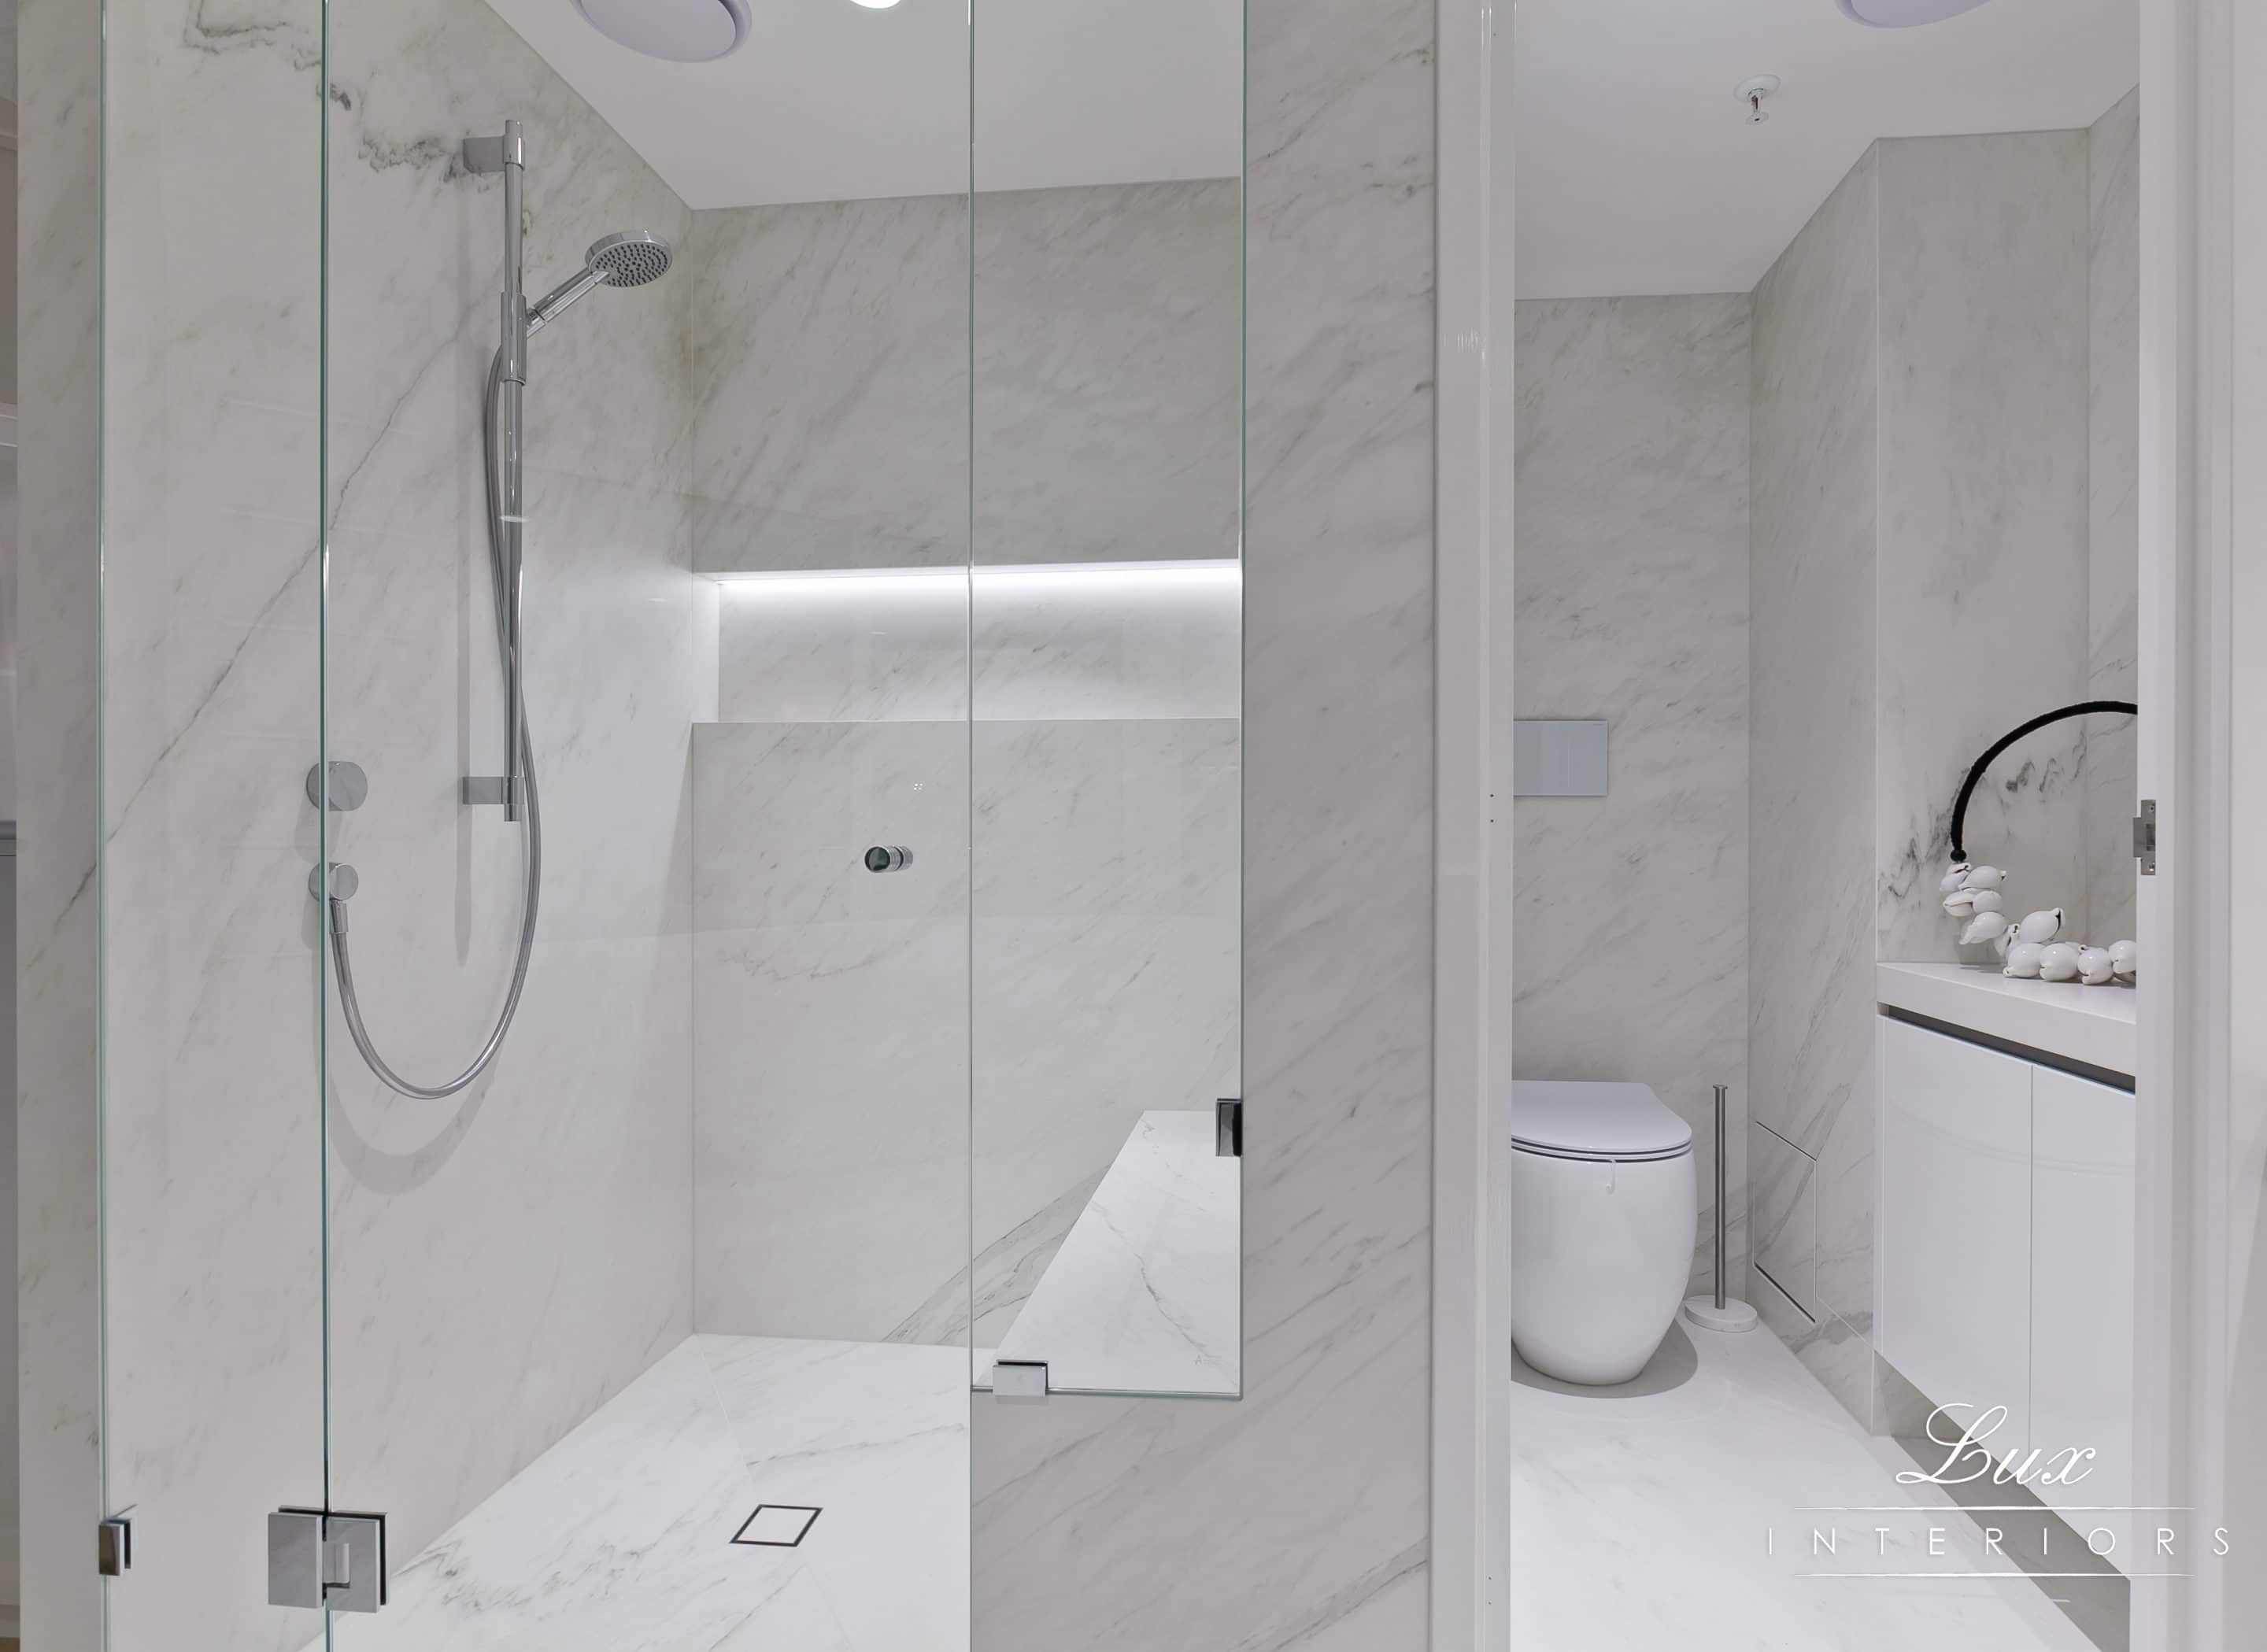 Specific angle of the toilet and shower